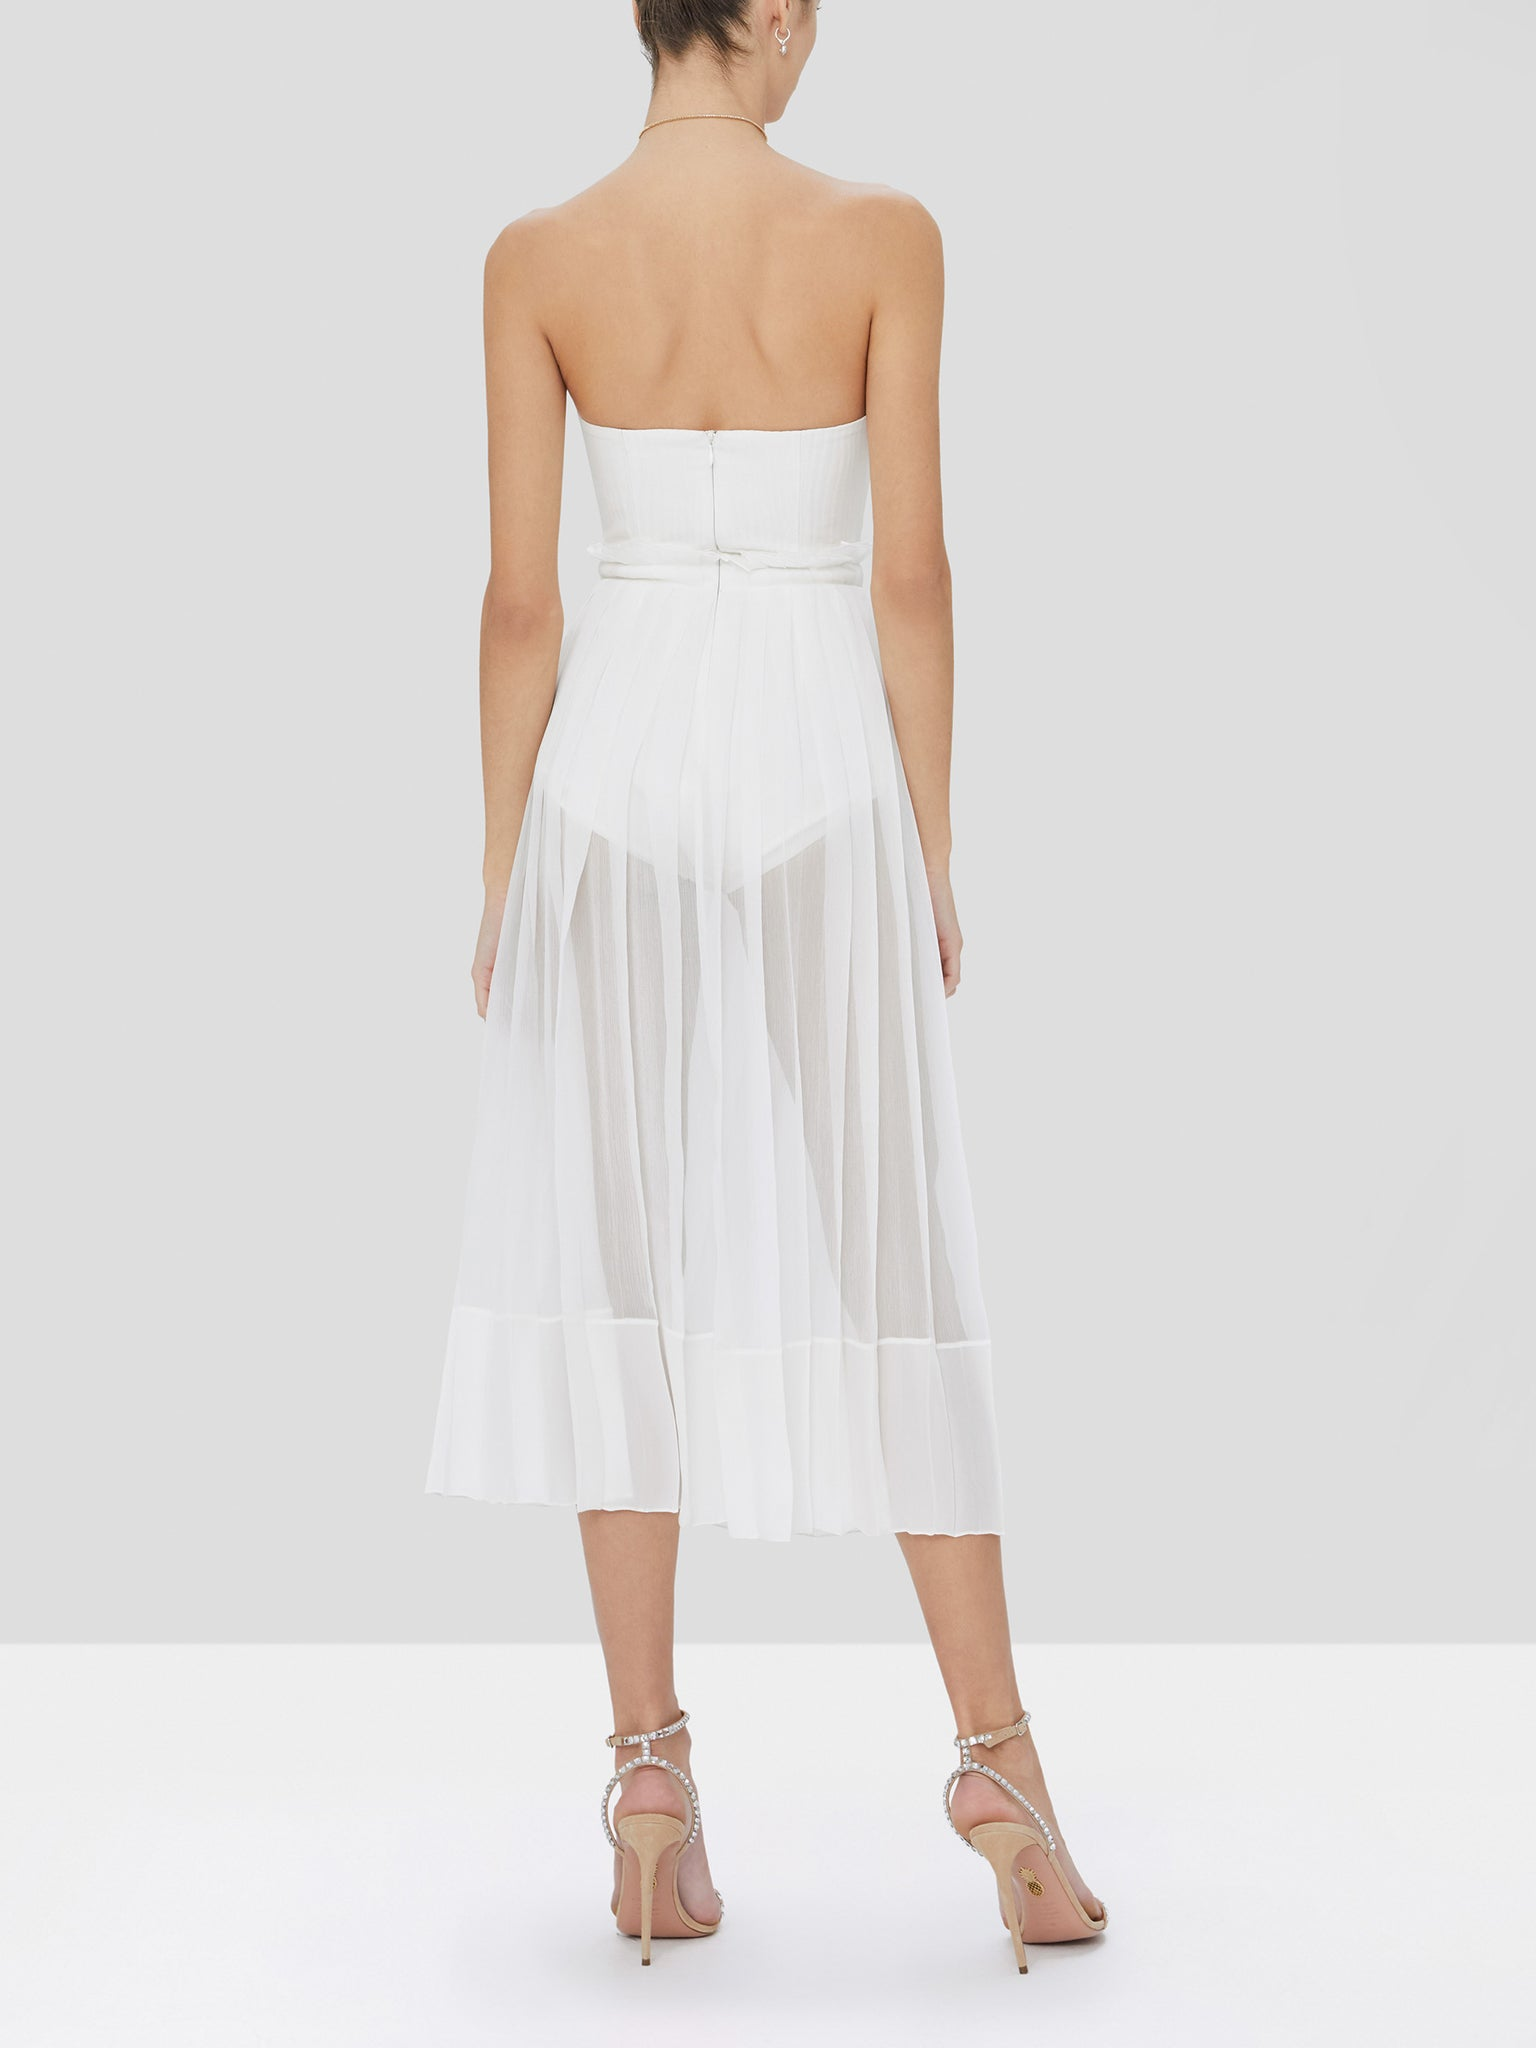 inasia dress in off white - Rear View